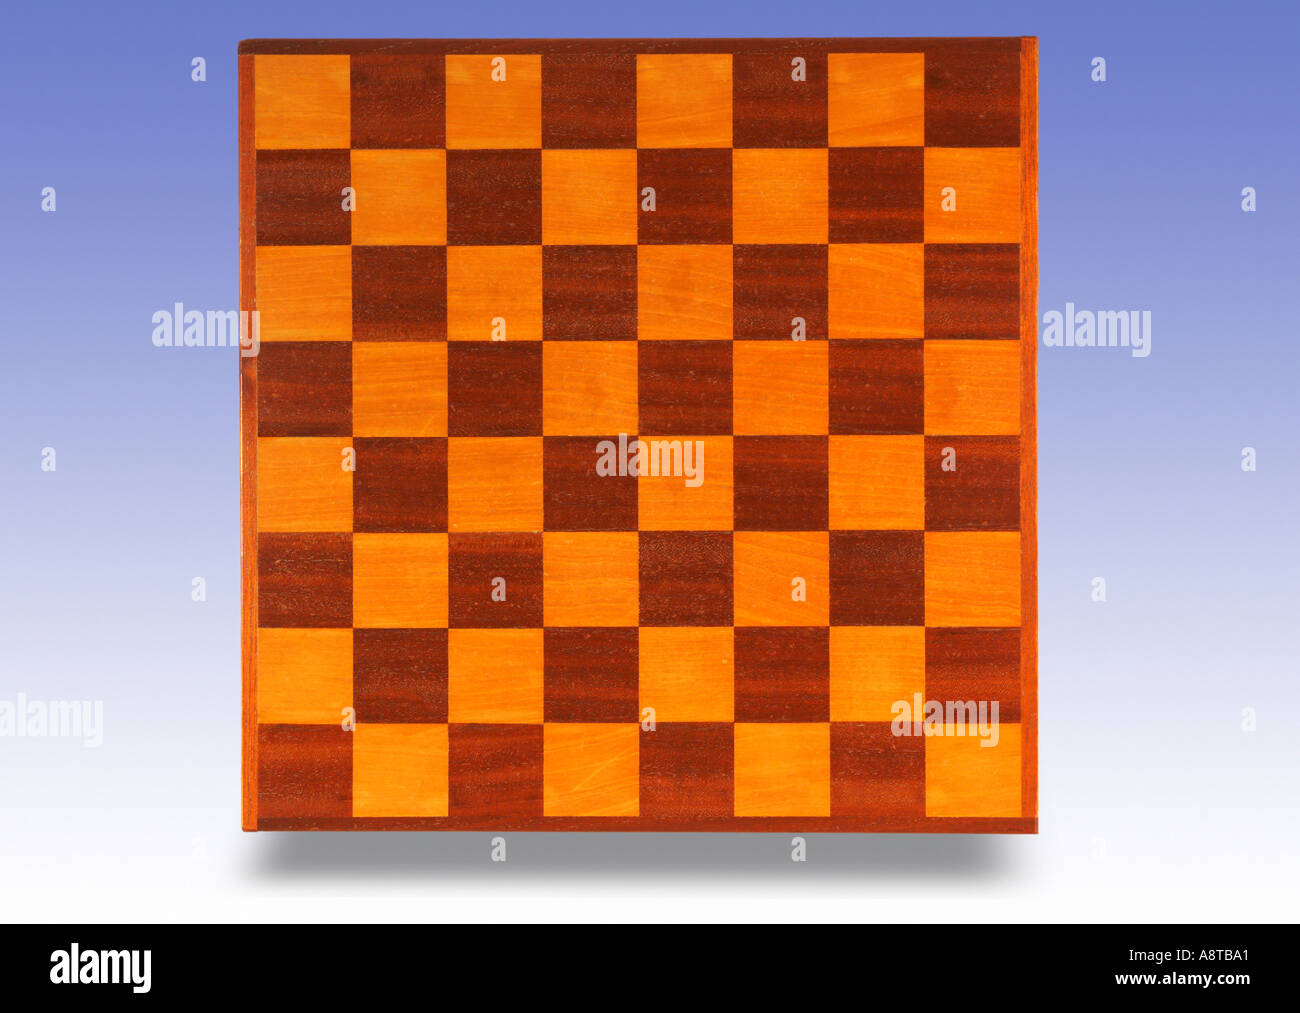 Checkerboard Chessboard - Stock Image